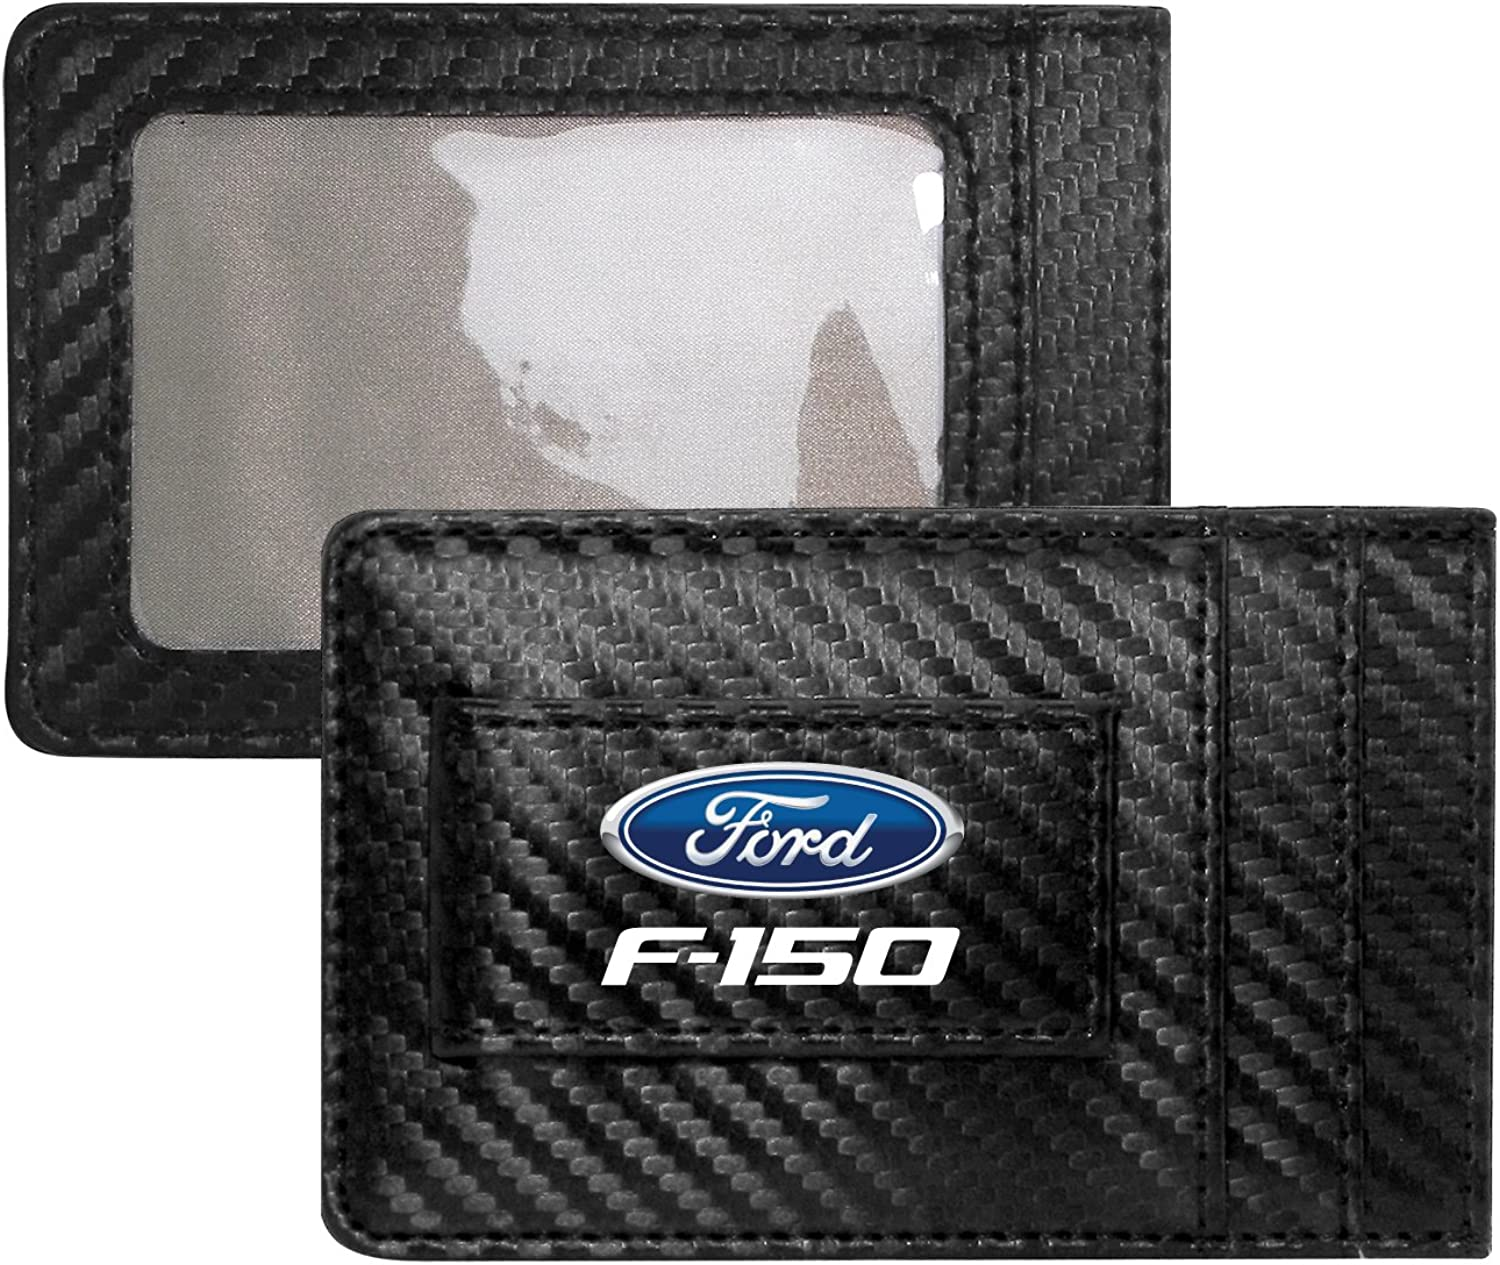 Ford F-150 Carbon Fiber Style Minimalist Leather Slim Wallet RFID Block with Money Clip